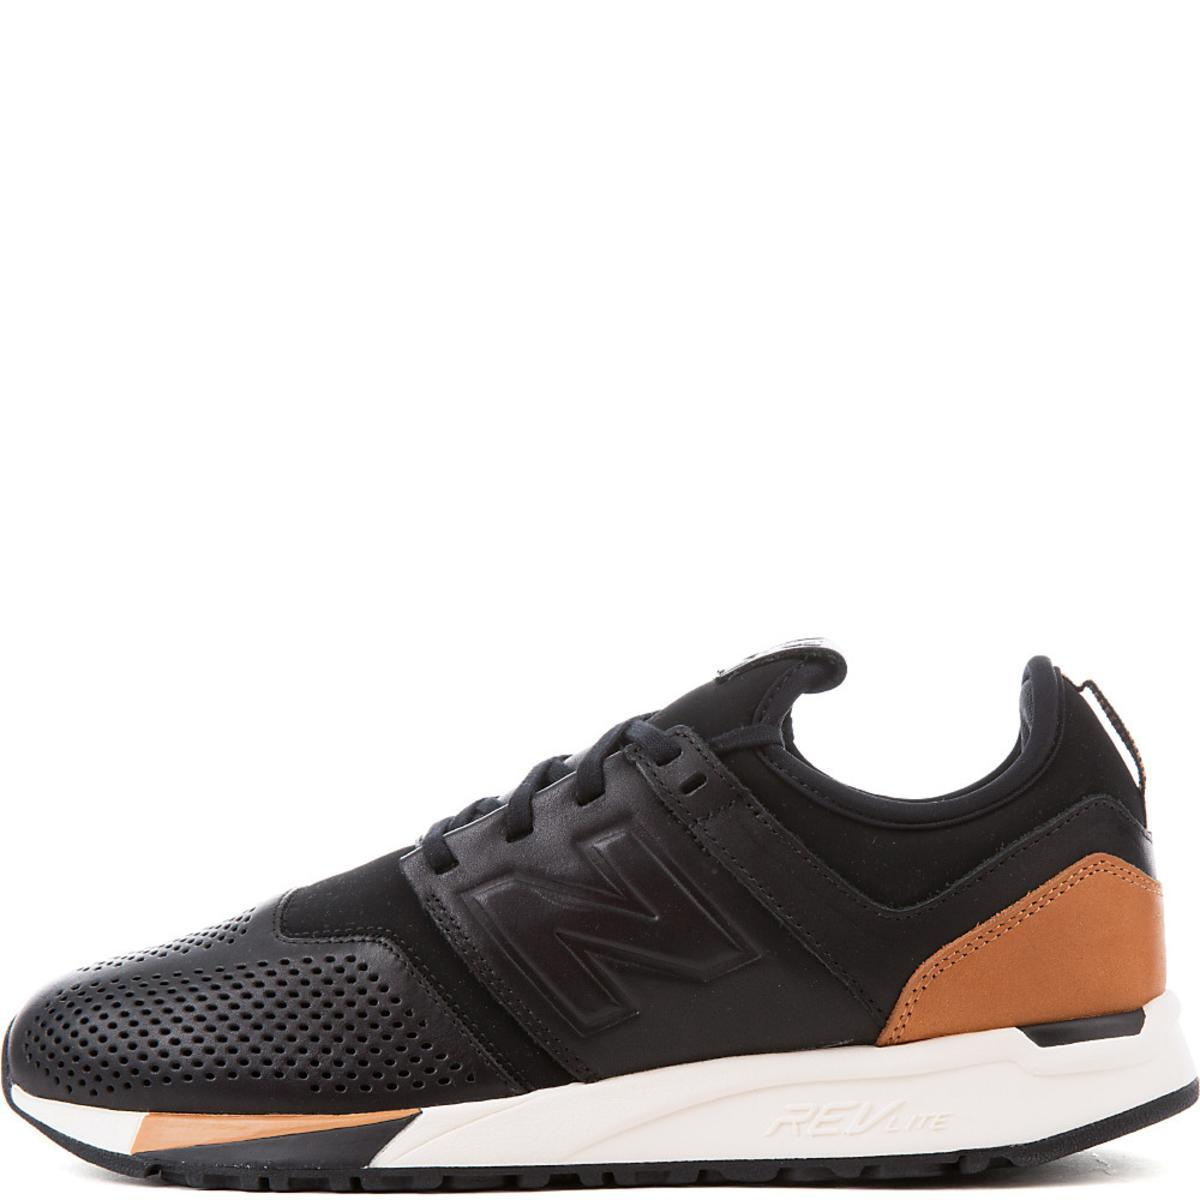 Men's Athletic Running Sneaker 247 Lux